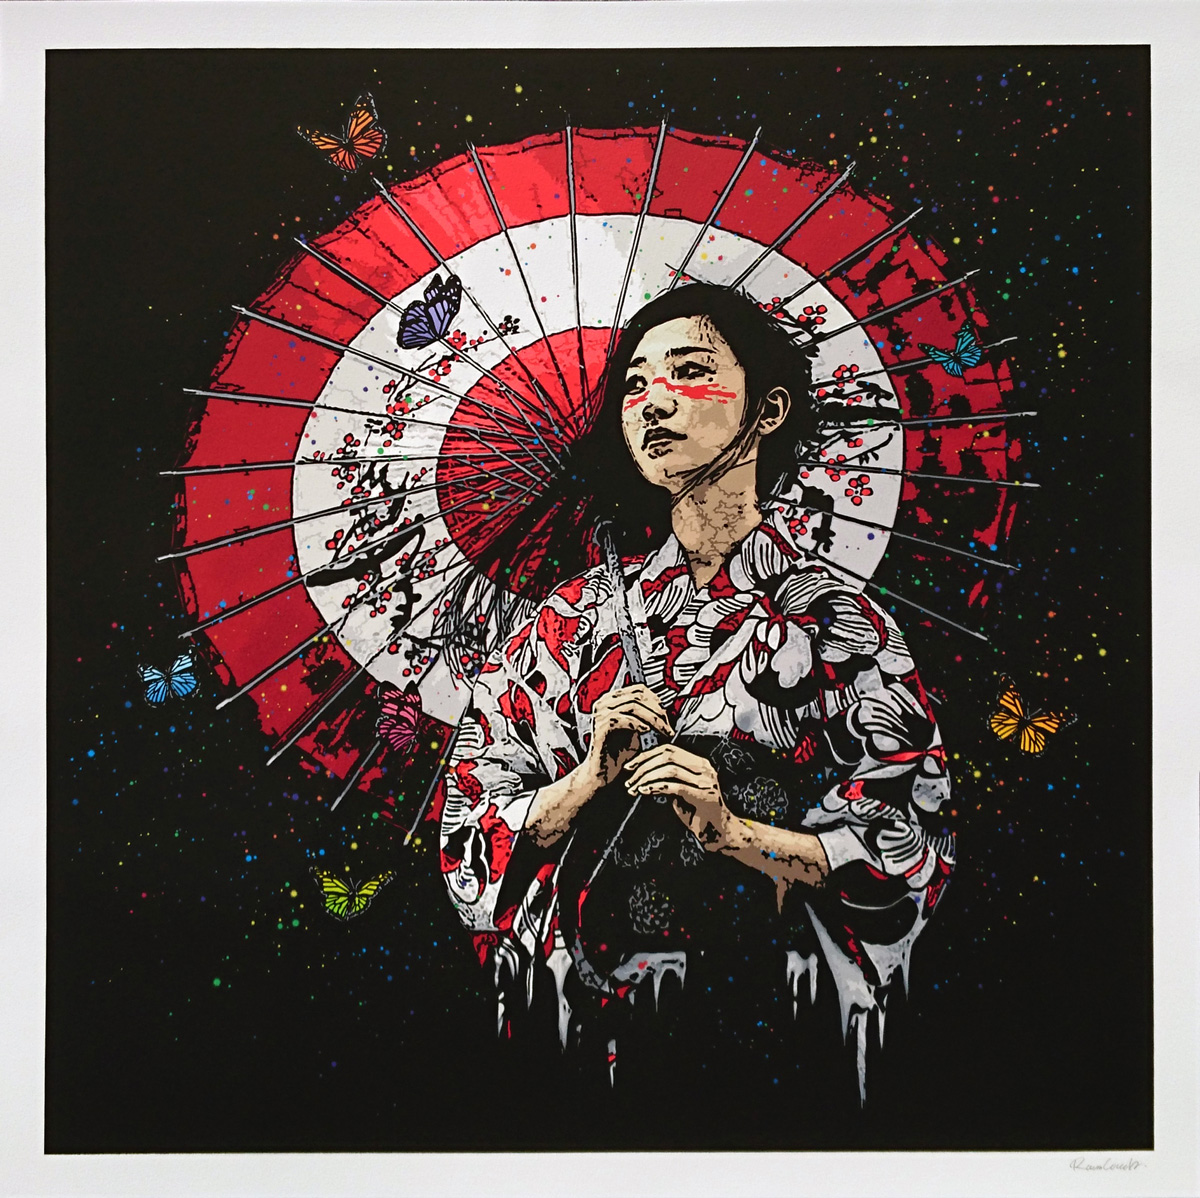 """Nadeshiko"" by Roamcouch.  25"" x 25"" 40-color Screenprint.  Ed of 95 S/N.  $300"